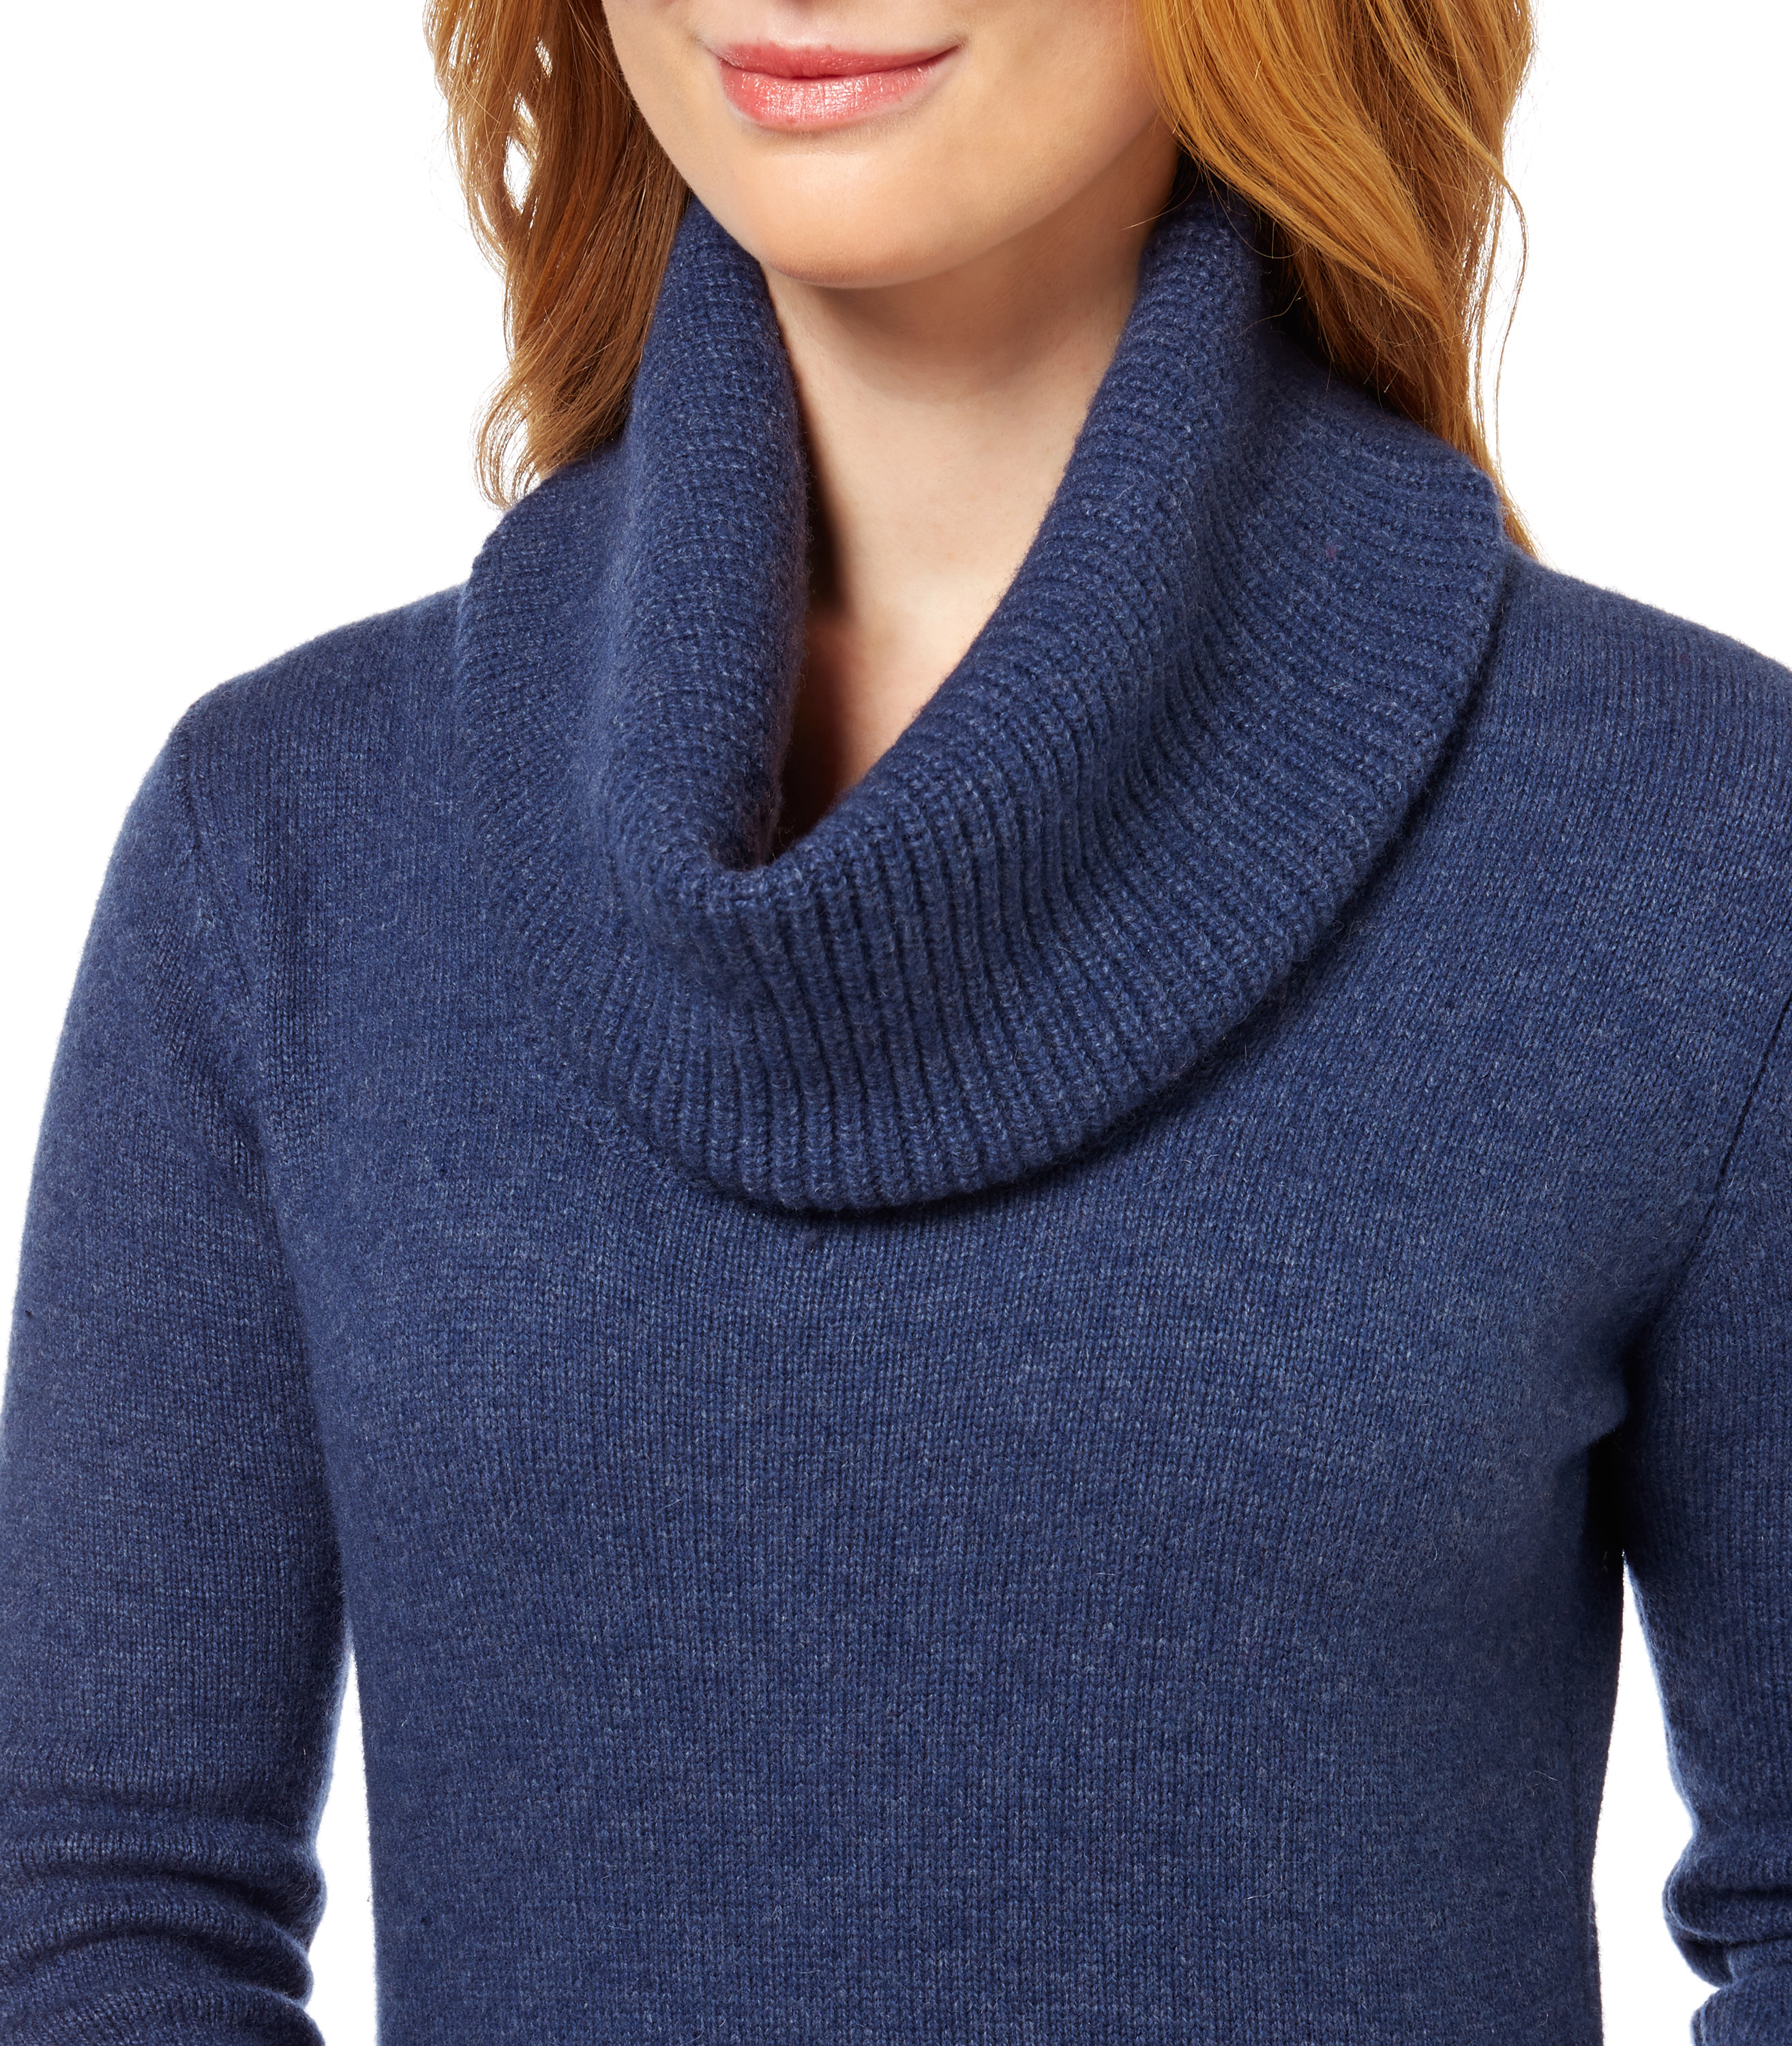 Mar 11,  · All-over stripes and a textured knit highlight the Natural Reflections® Cowl Neck Stripe Sweater for women. Features include a cowl neck, a longer Author: Klw_